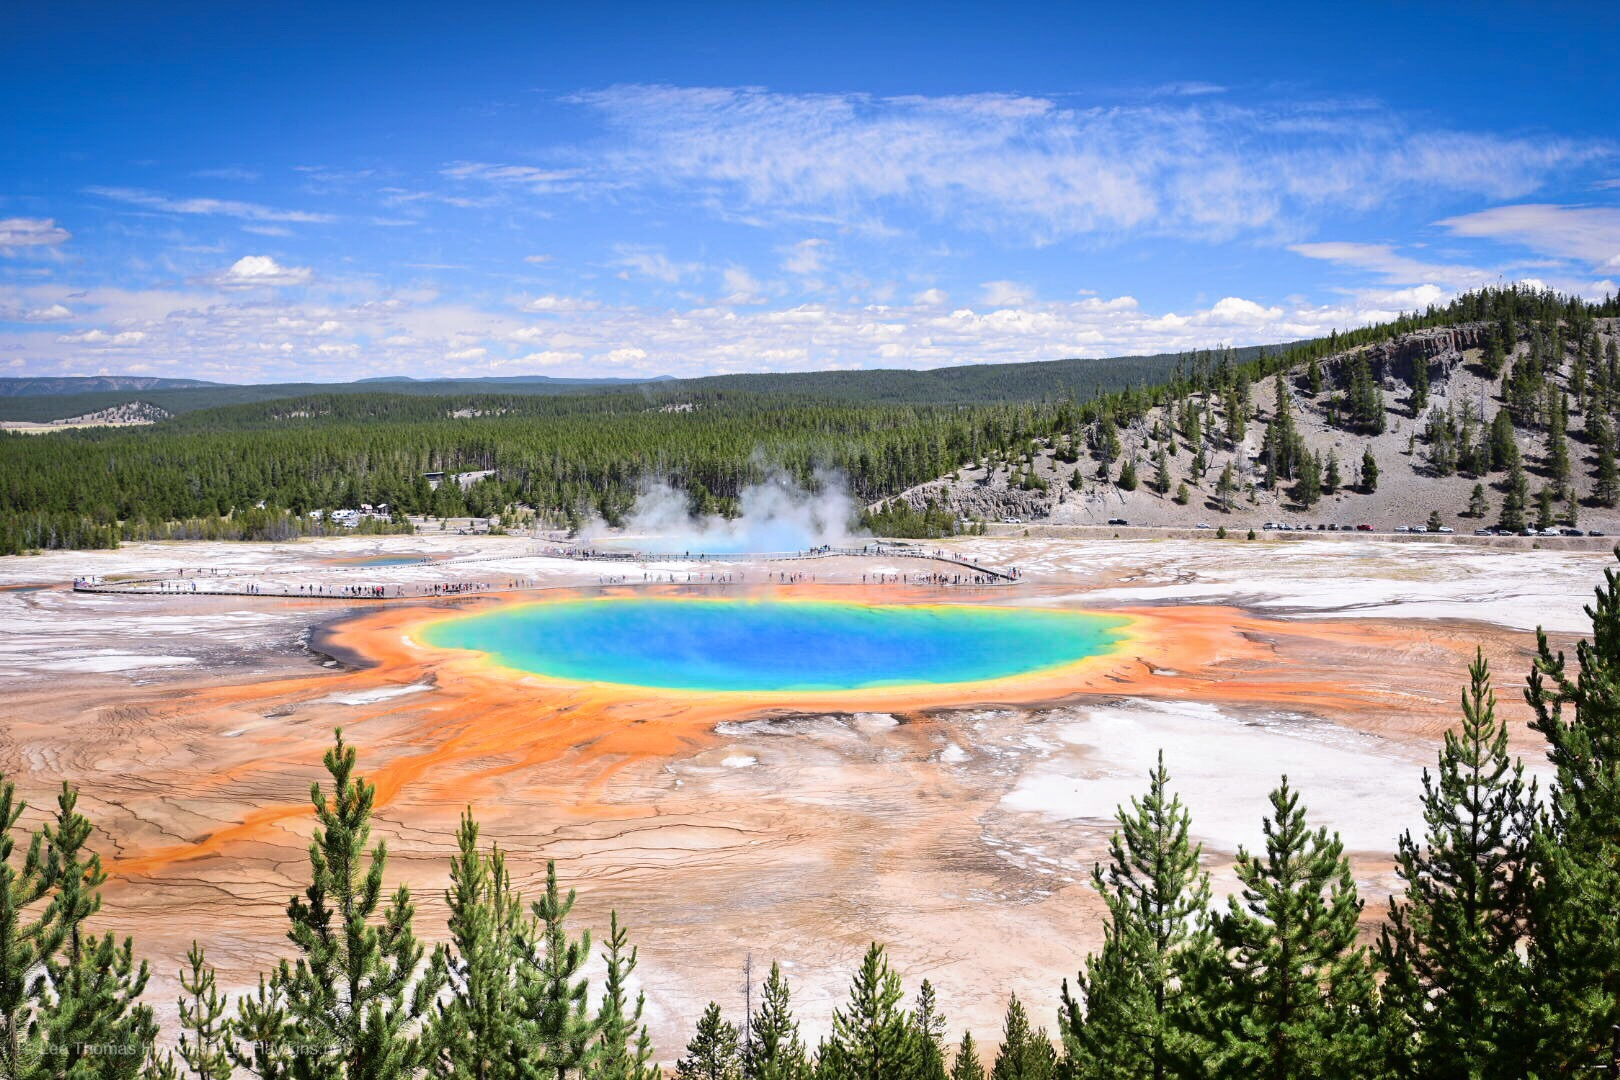 A gigantic hot spring with deep blue and green colors in the center is surrounded by yellow, orange, and red colors on the fringes.